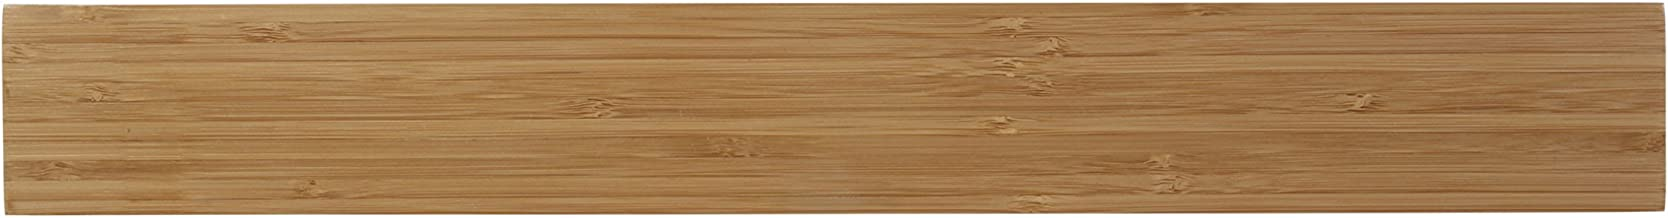 Mercer Culinary Magnetic Bar, 18 x 2-3/8 x 3/4 inch, Bamboo